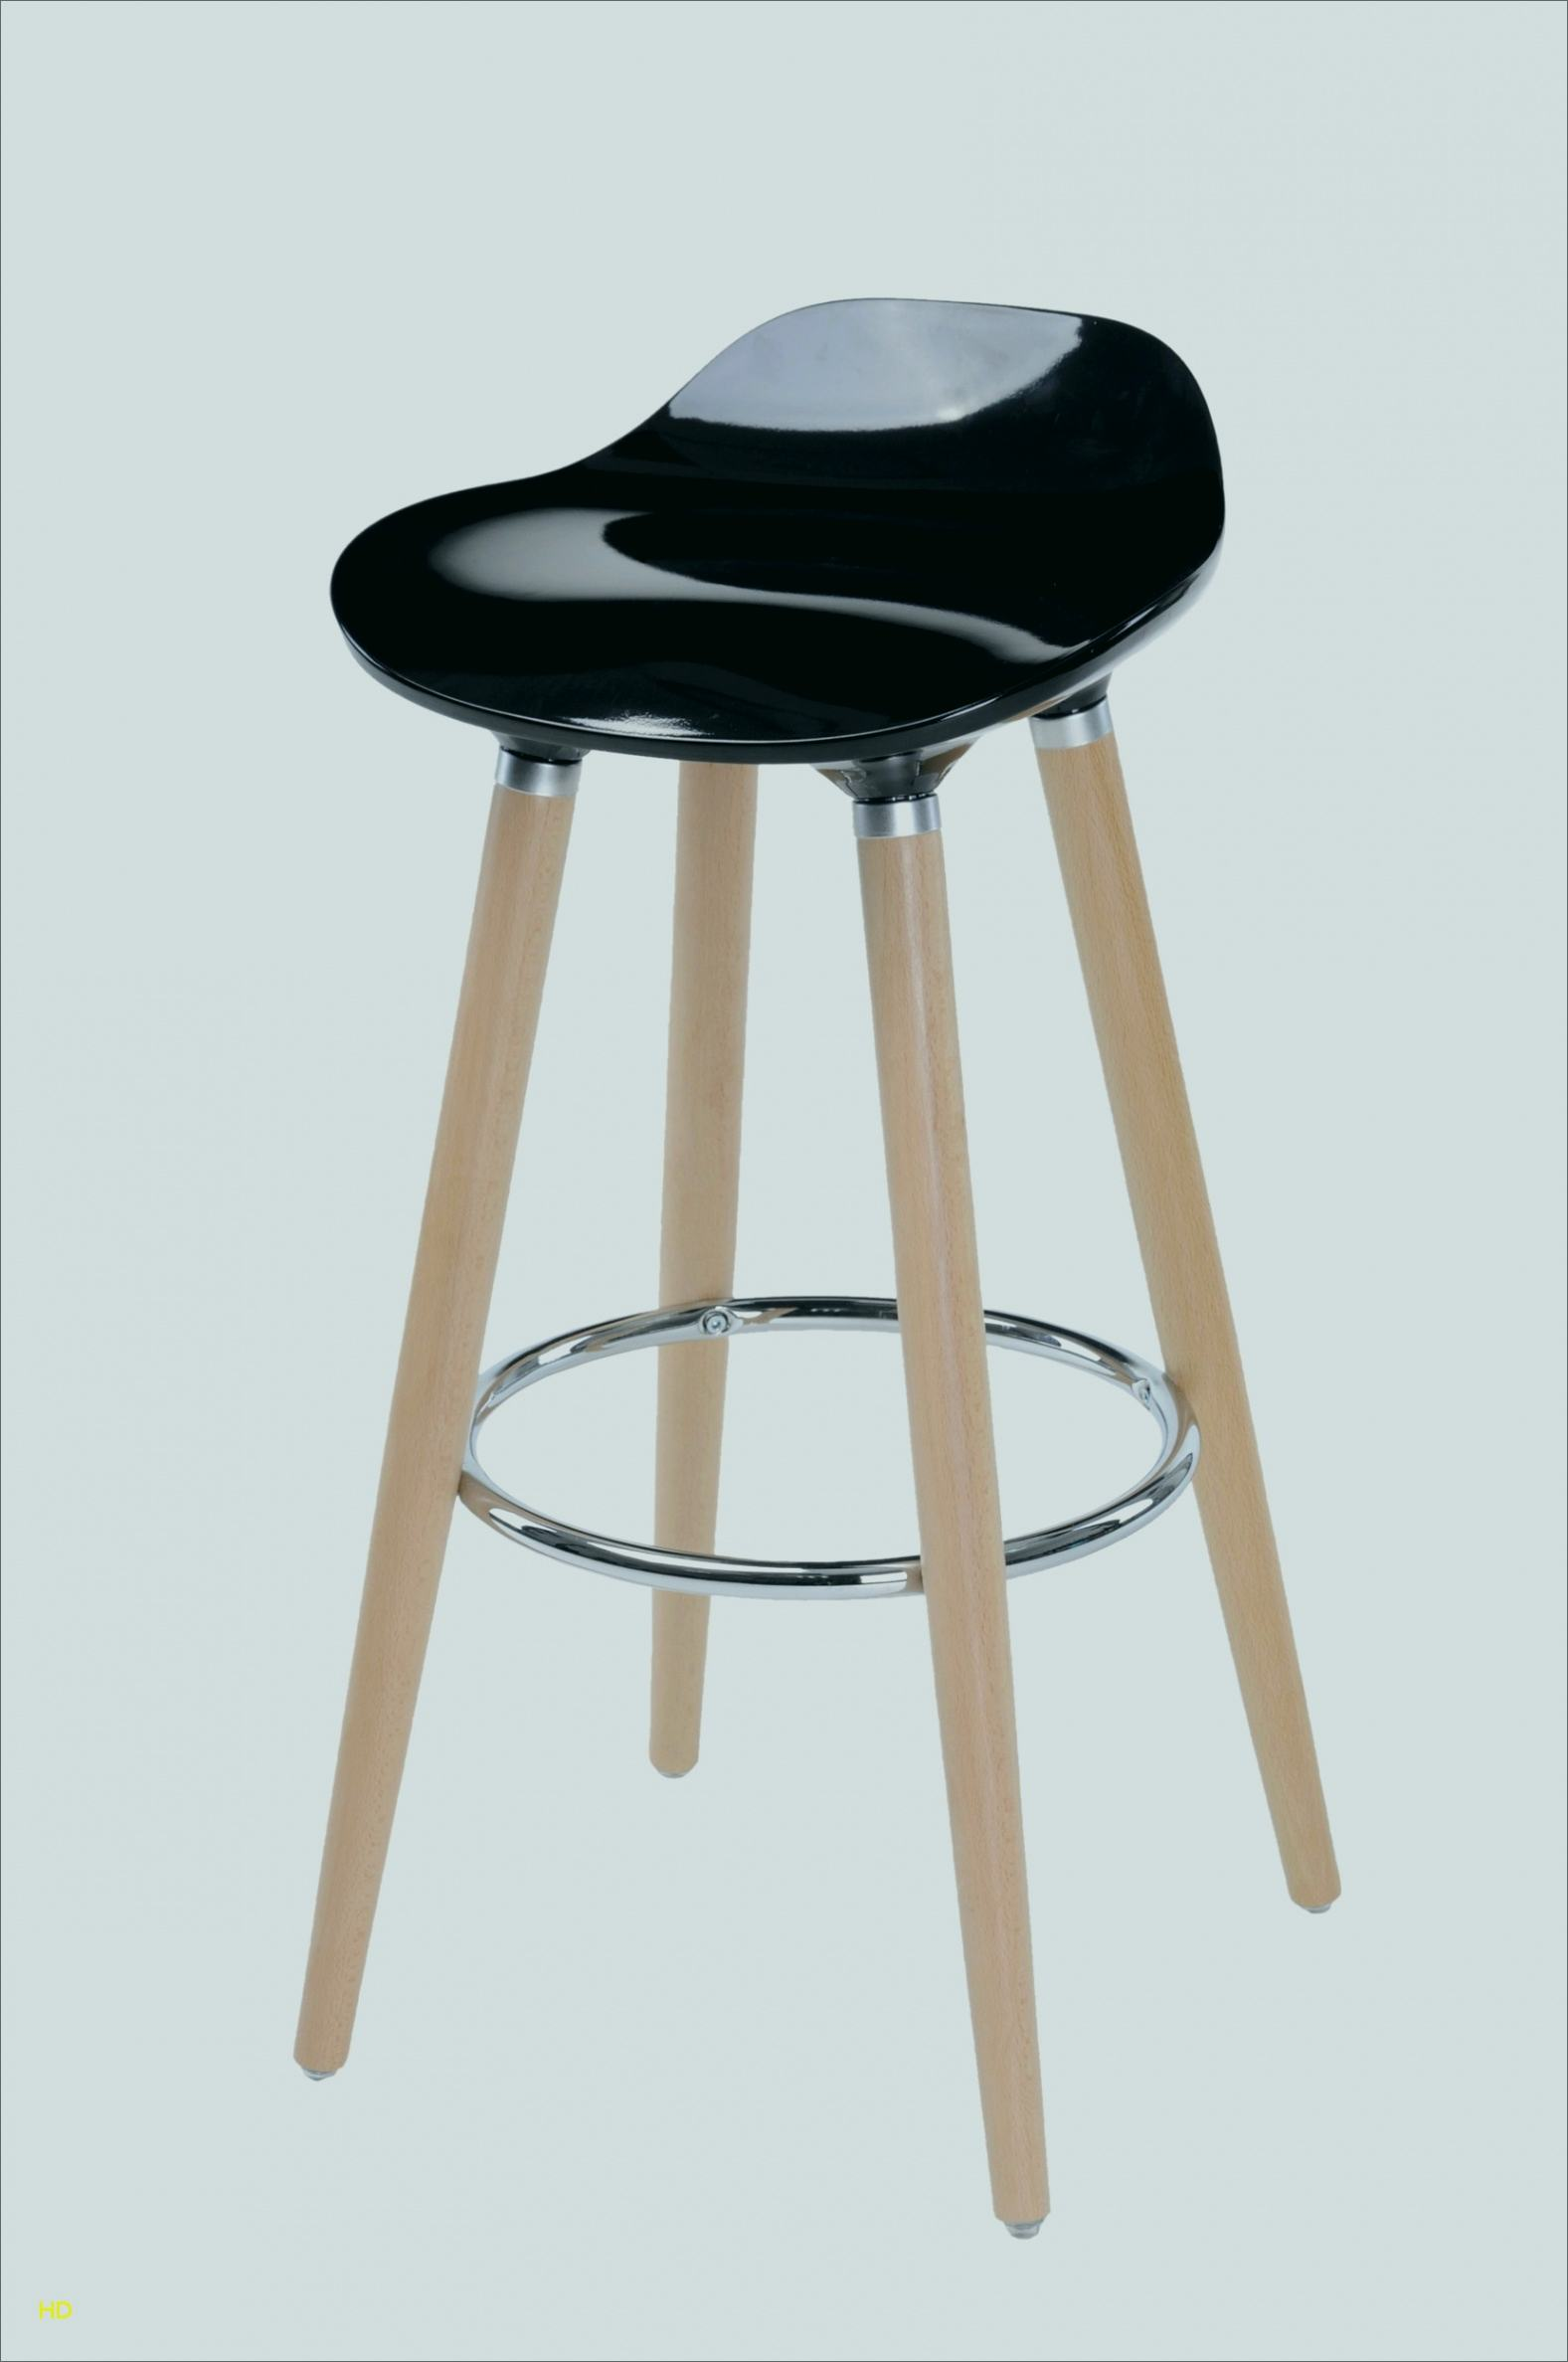 Tabouret De Brico Depot Gain Boutique Bar zLSGUqpMV